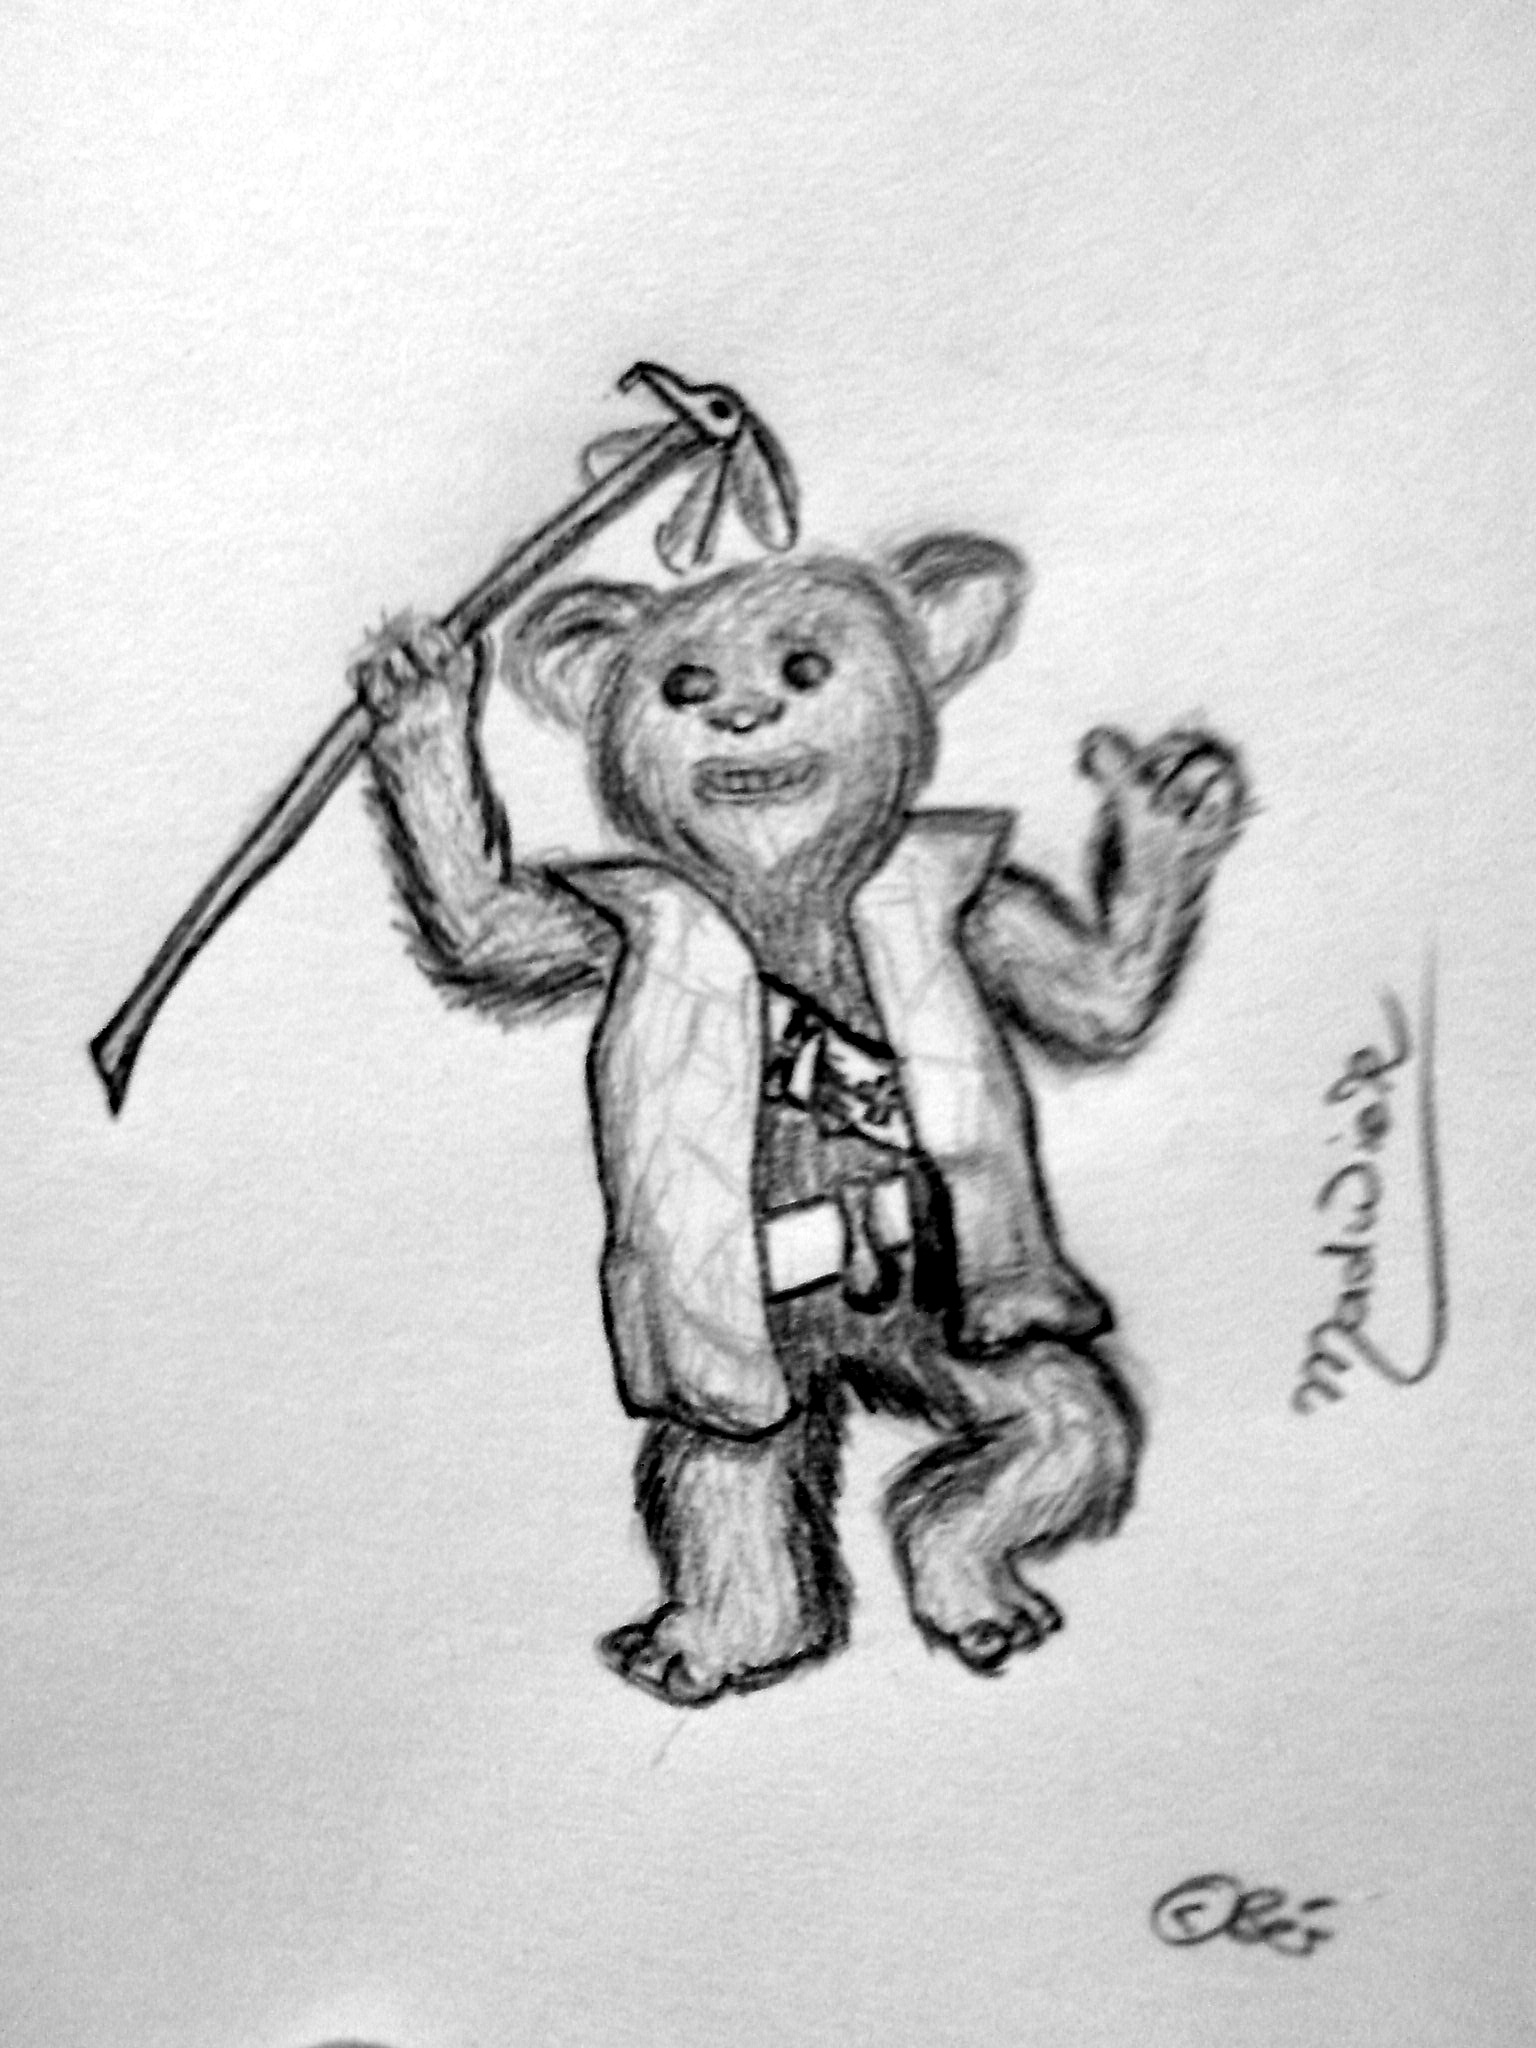 Ewok-Shaman 'Madwick' for the roleplaying-game Star Wars (Copyright Wizard of the Coast Verlag; Fanart).